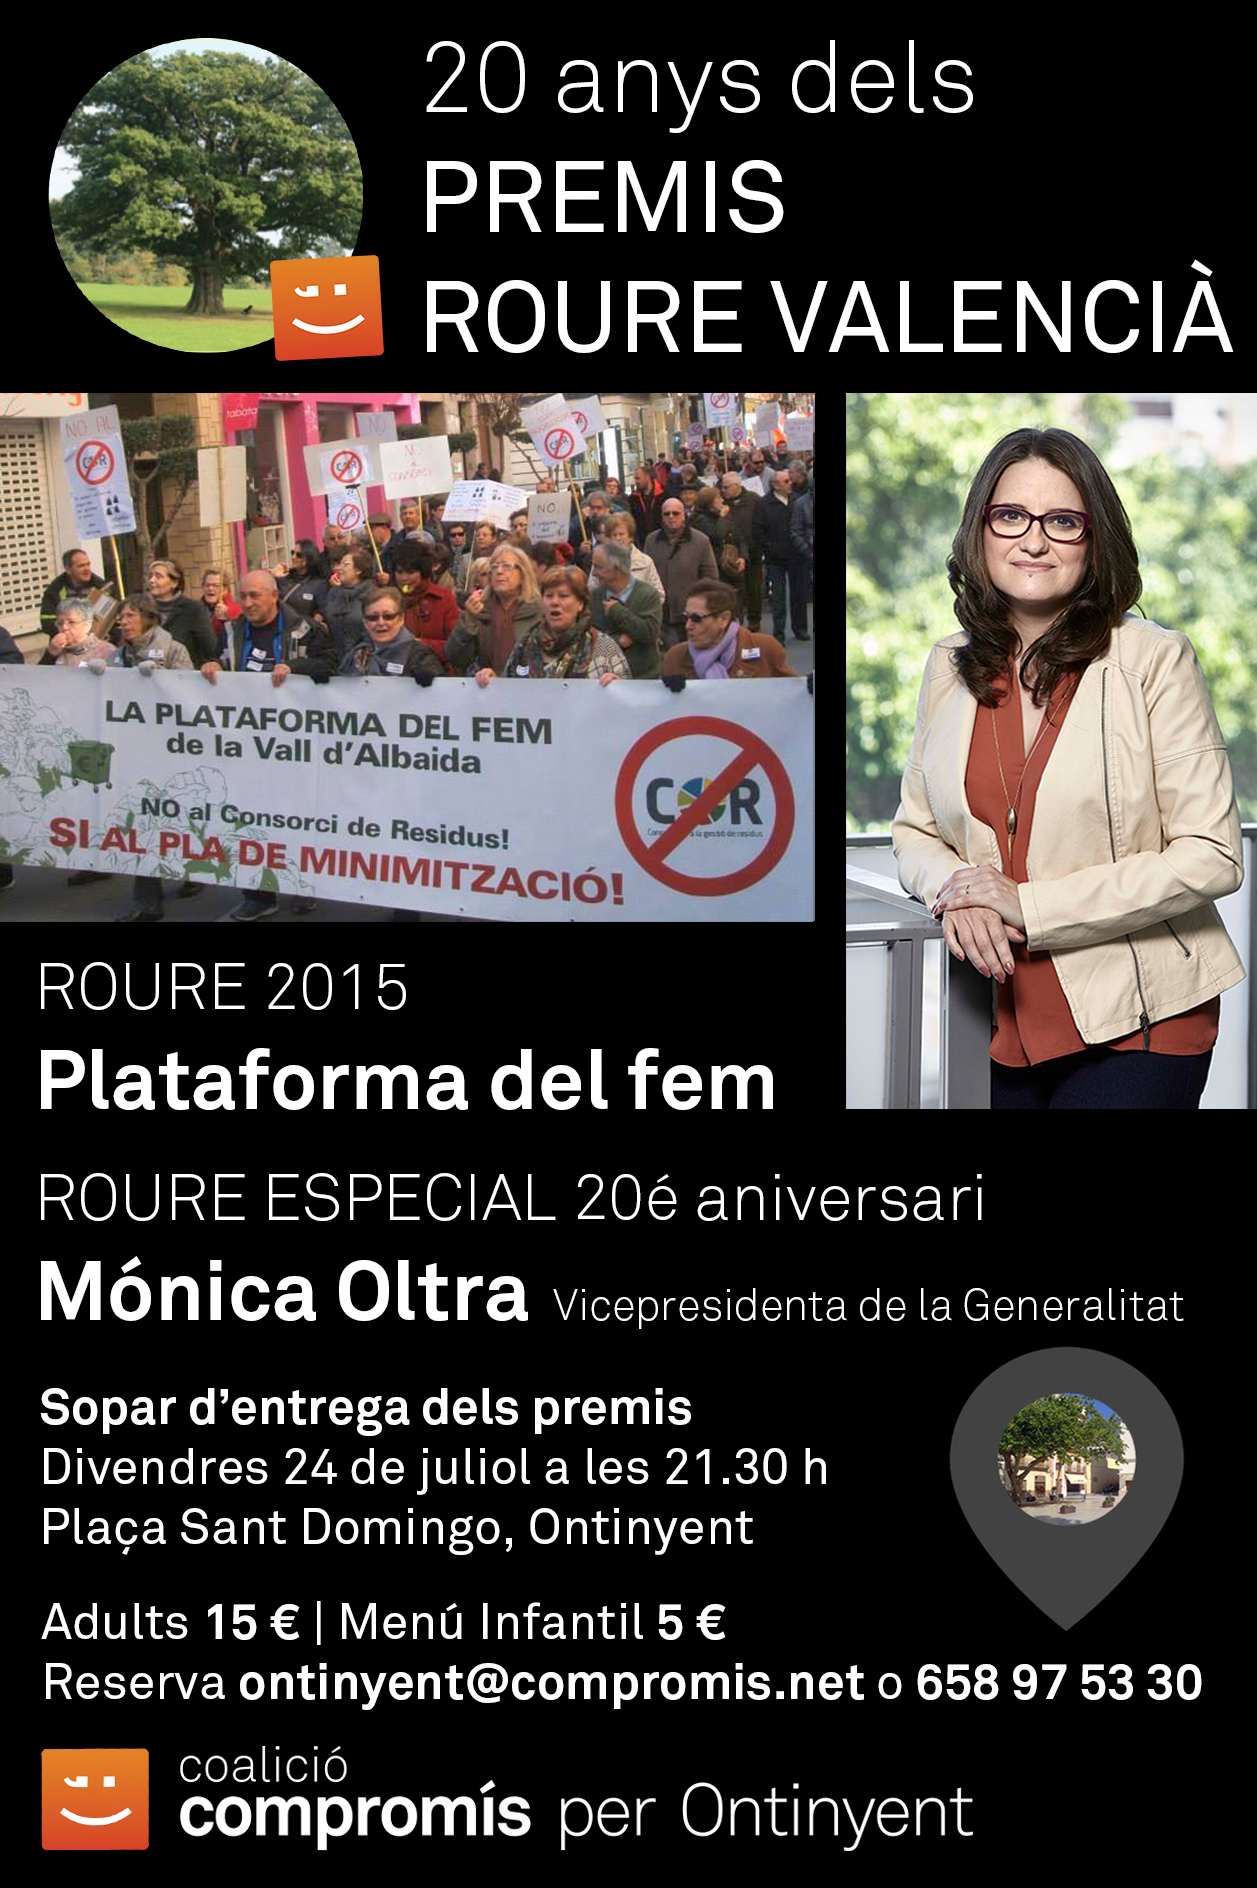 11. ROURE 2015 CARTELL